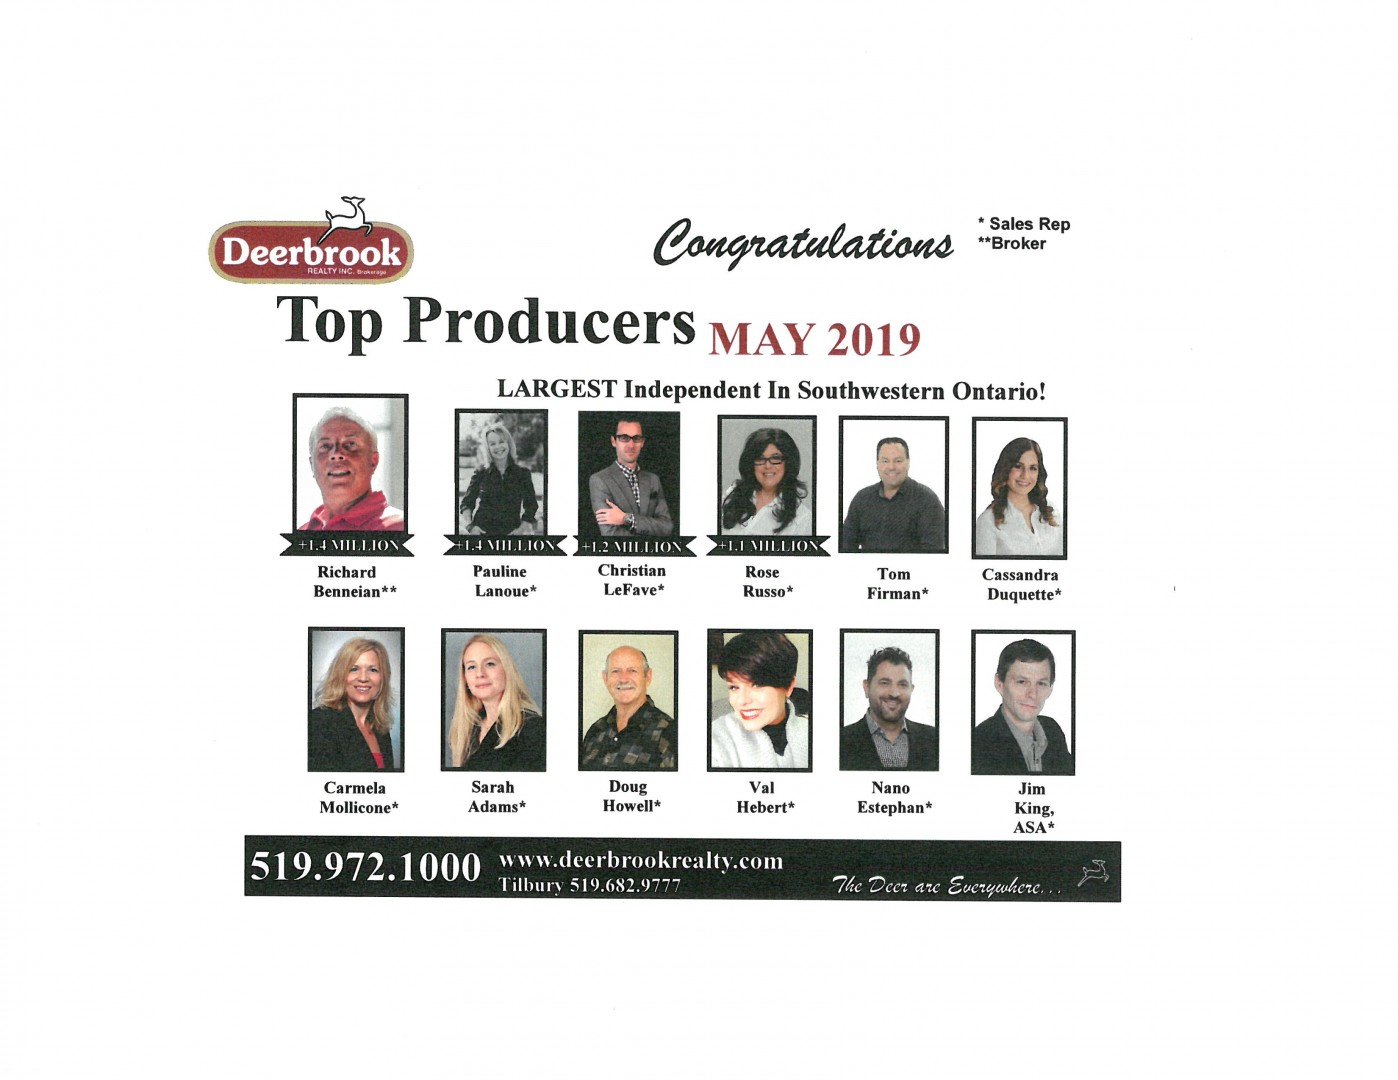 Top Producer for May 2019